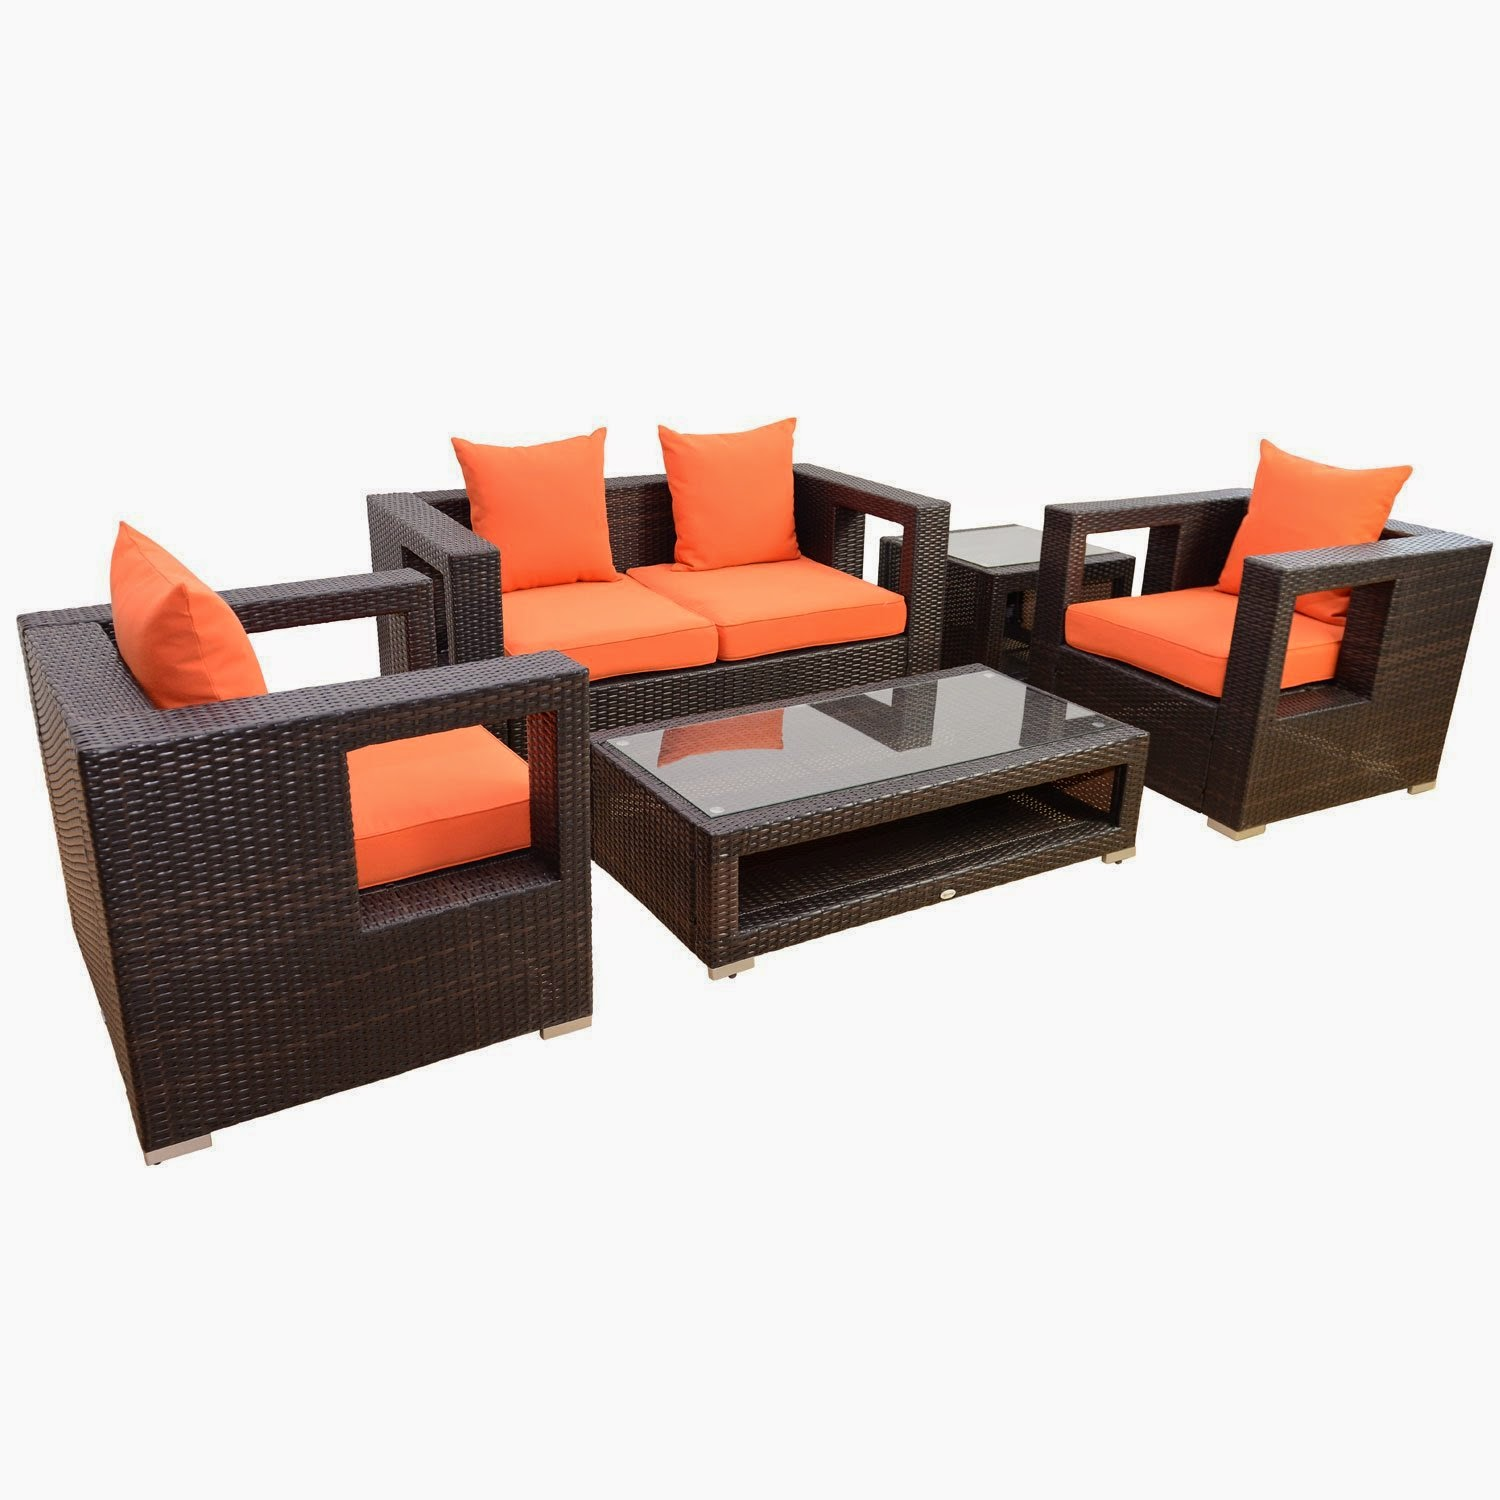 get discount outsunny 5pc outdoor pe rattan wicker sectional loveseat sofa set outdoor patio. Black Bedroom Furniture Sets. Home Design Ideas